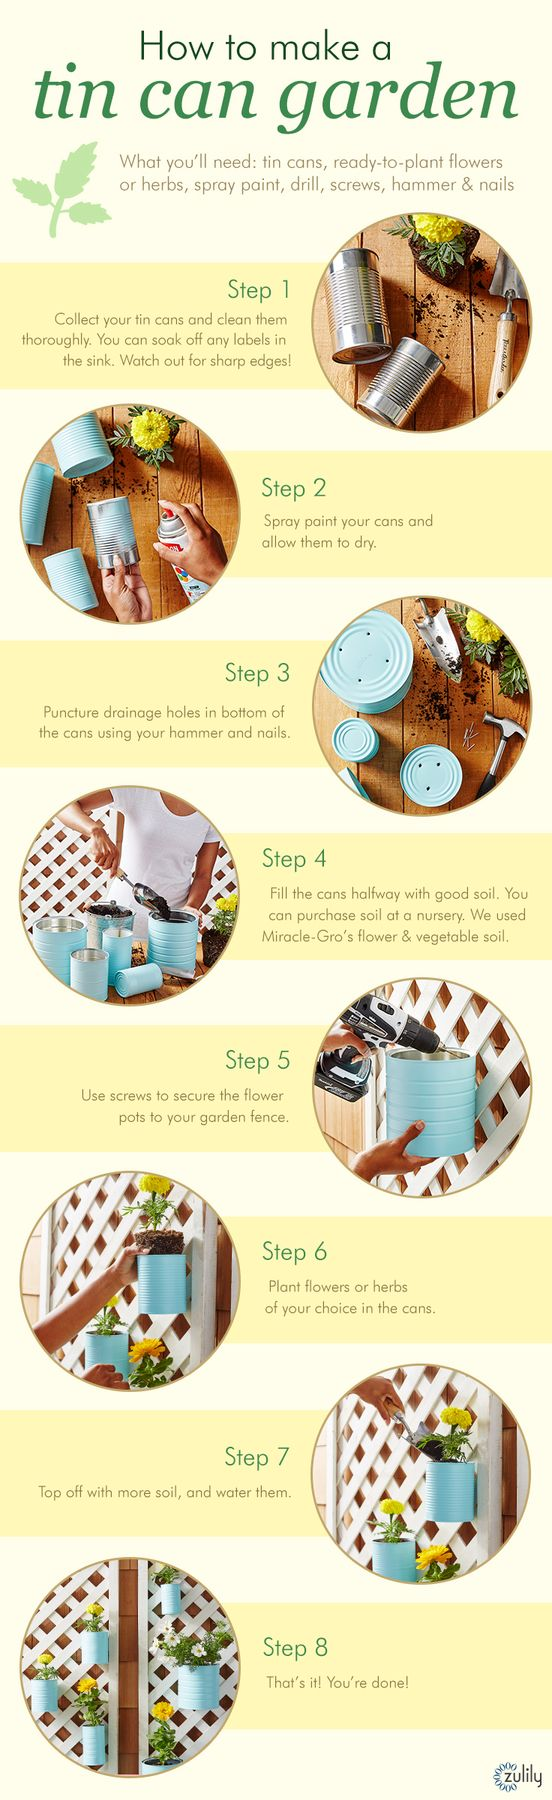 Learn How to Make a Tin Can Garden